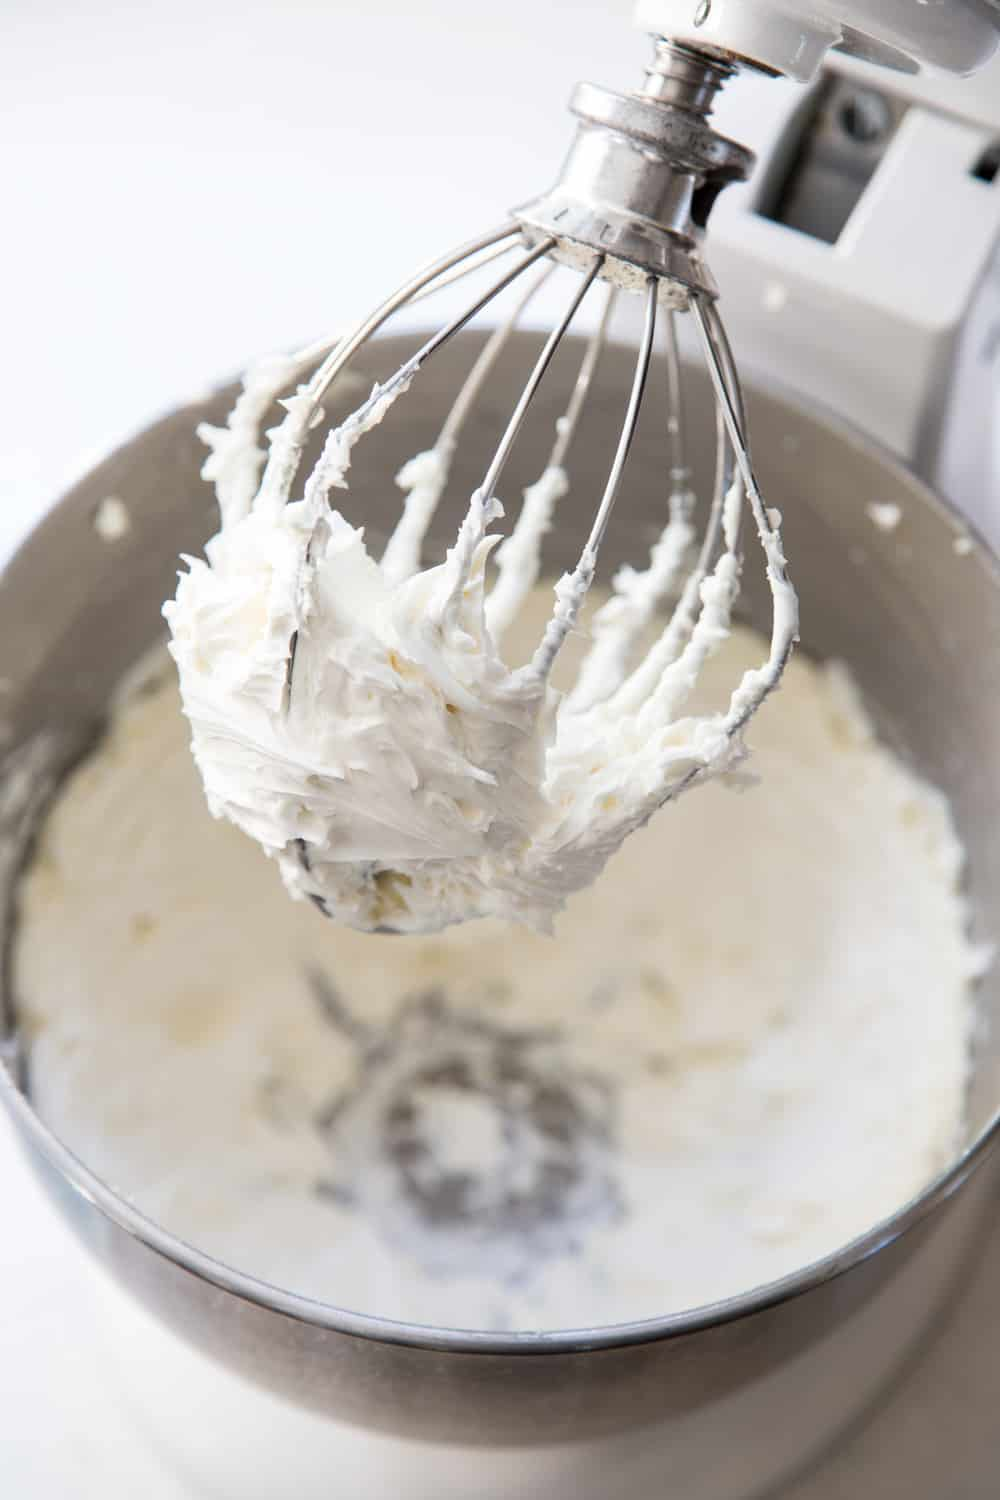 Vanilla buttercream frosting in a stand mixer bowl